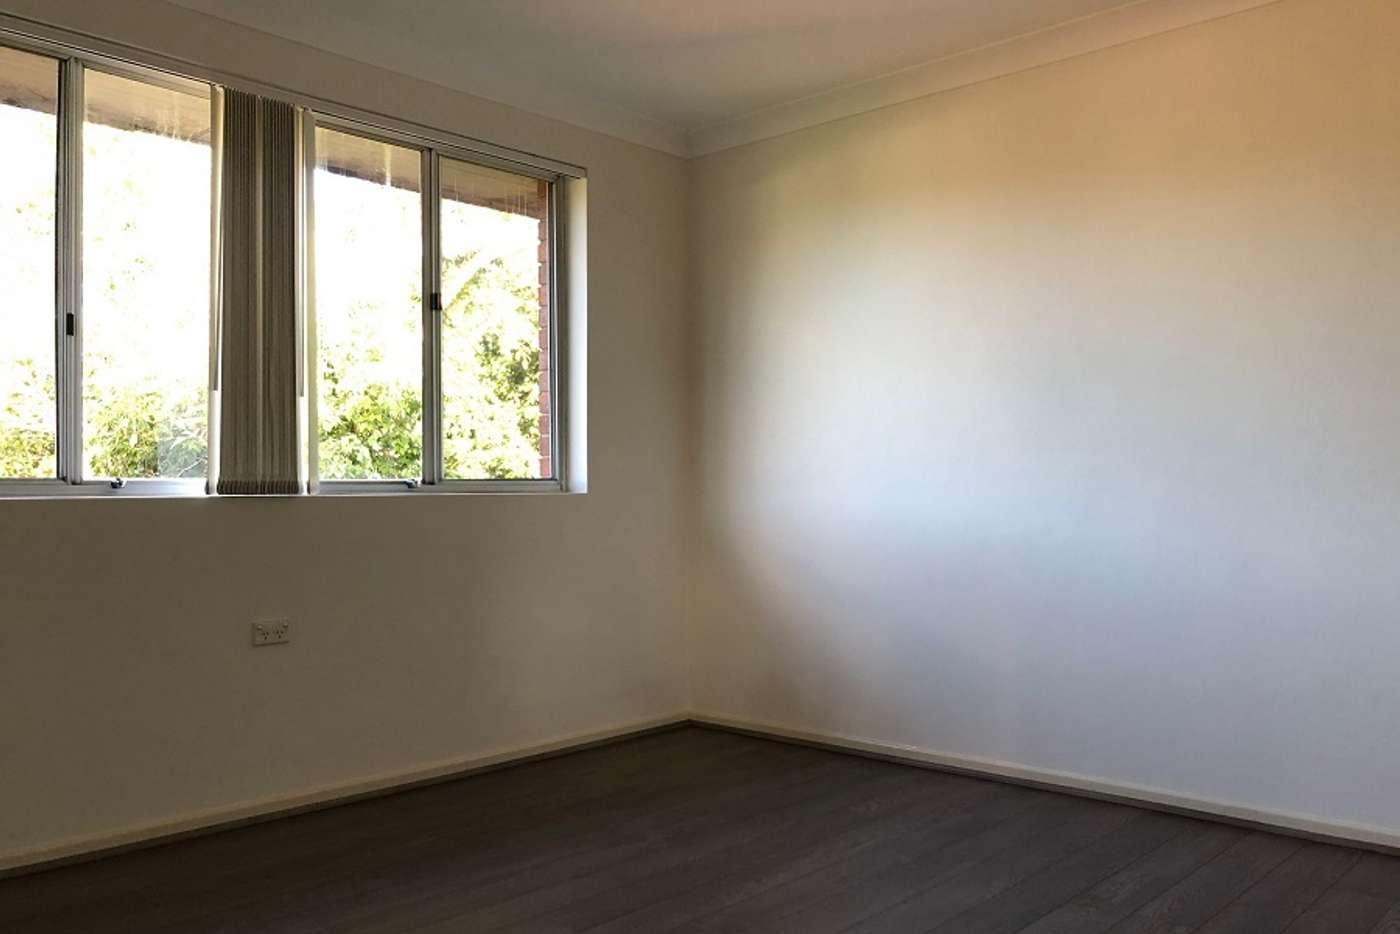 Seventh view of Homely apartment listing, 7/3-5 Kandy Avenue, Epping NSW 2121